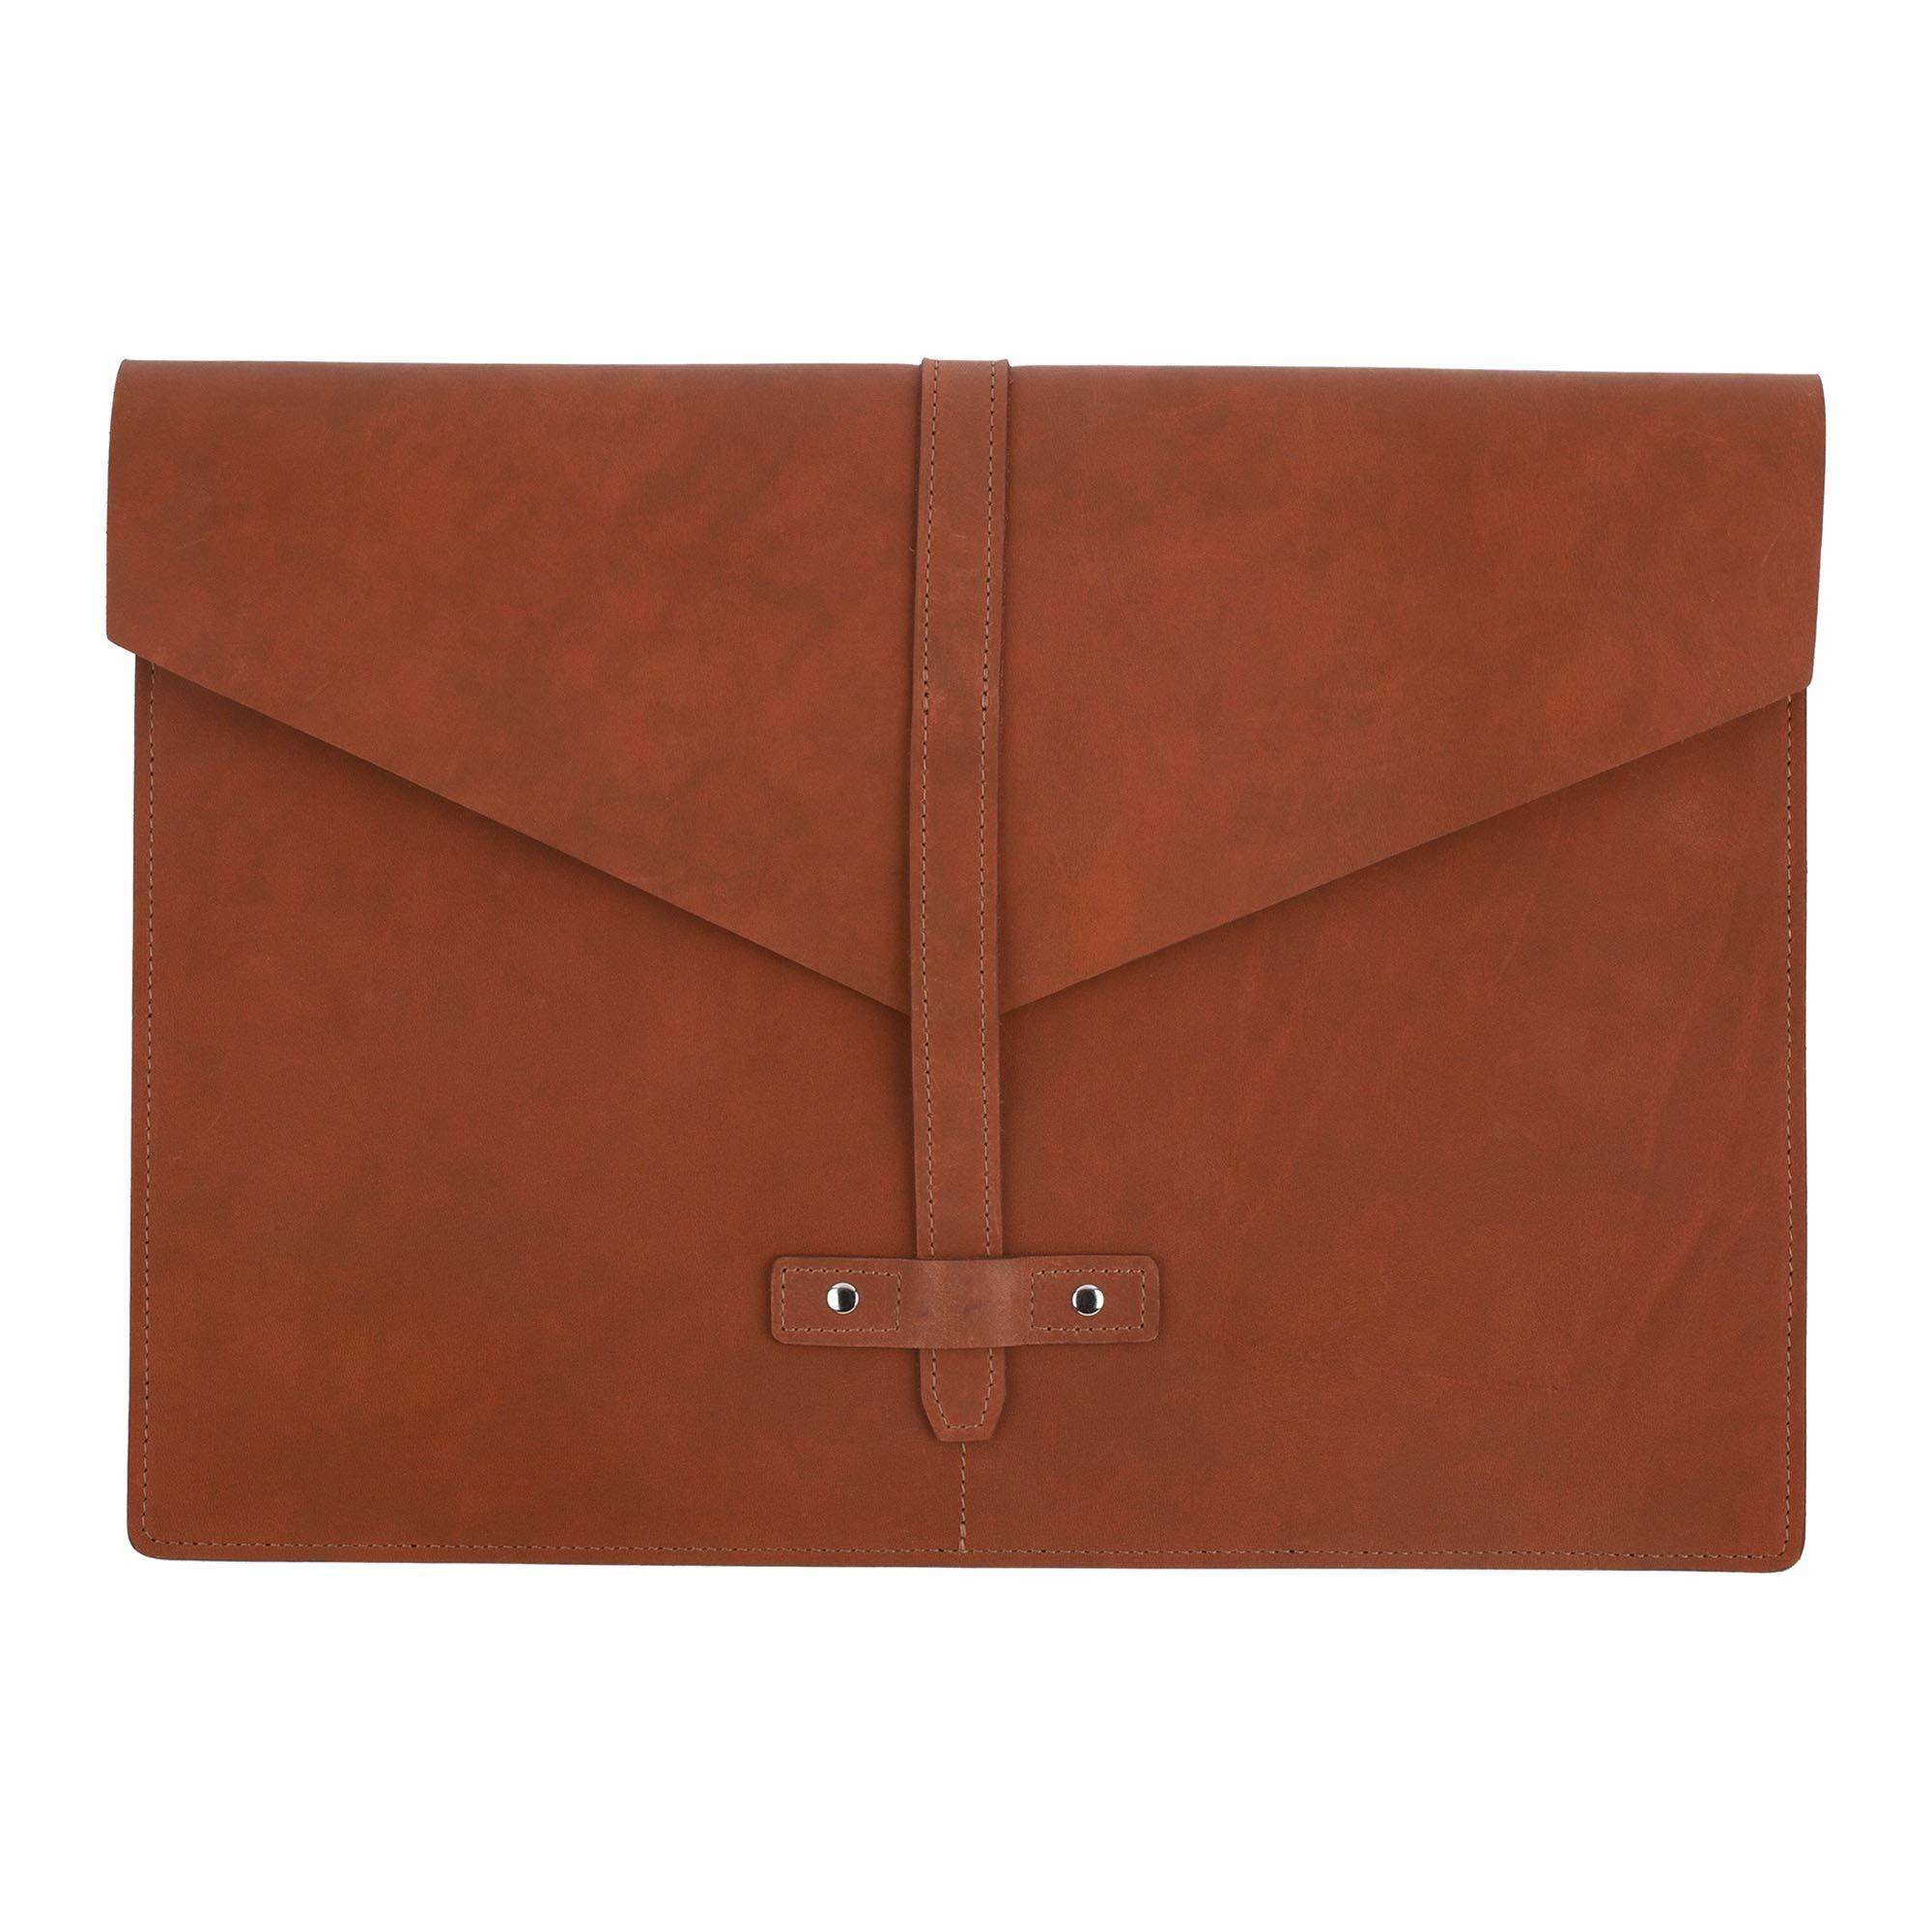 SLATE COLLECTION Belltown Small Laptop Sleeve, Full-Grain Leather (Cognac, fits 13'' Laptop)